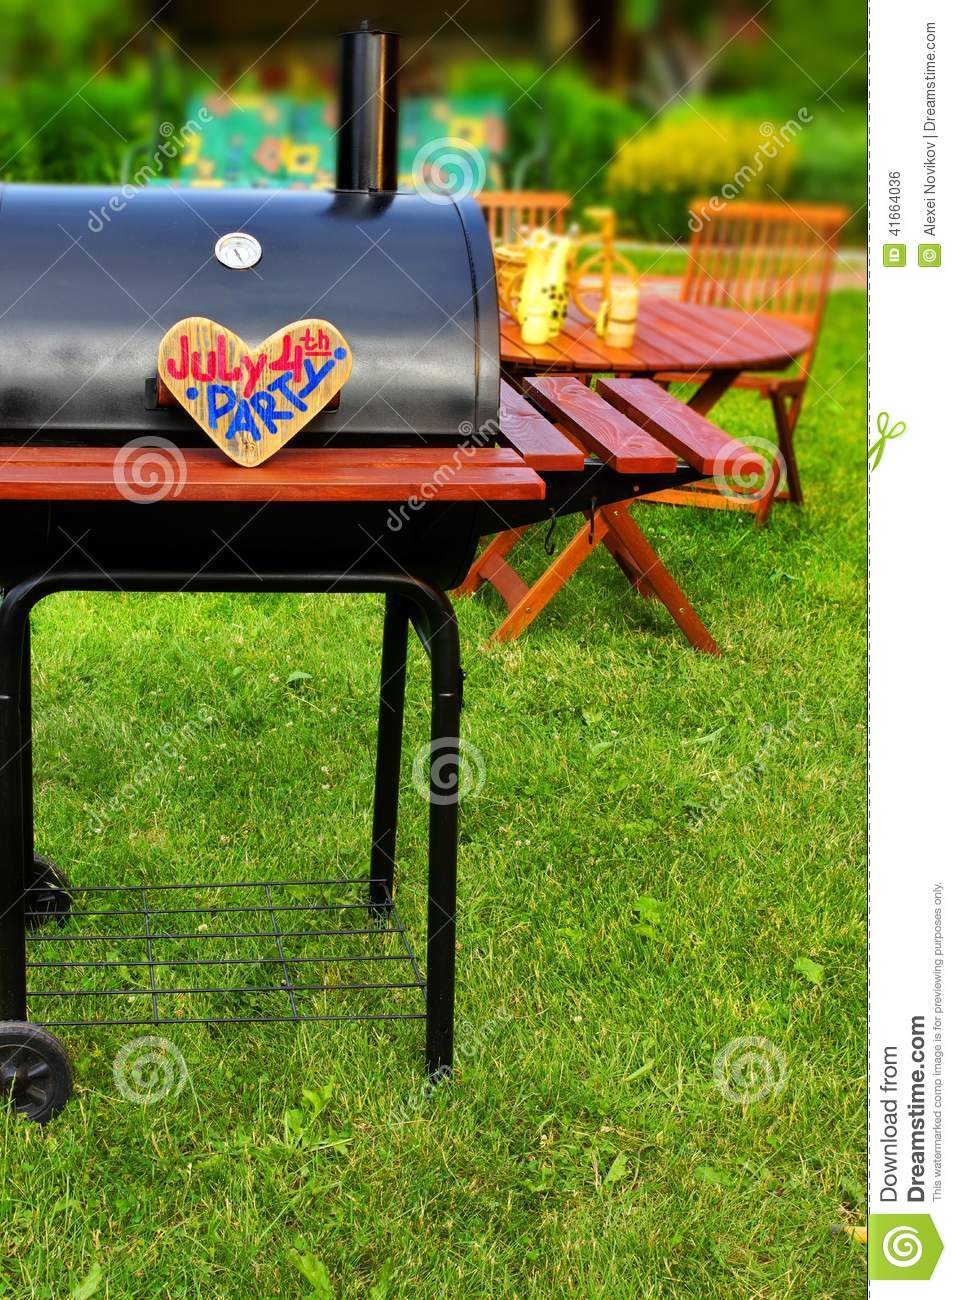 Backyard Summer Background : BBQ Summer Backyard Party Scene with sign JULY 4 th PARTY on wooden